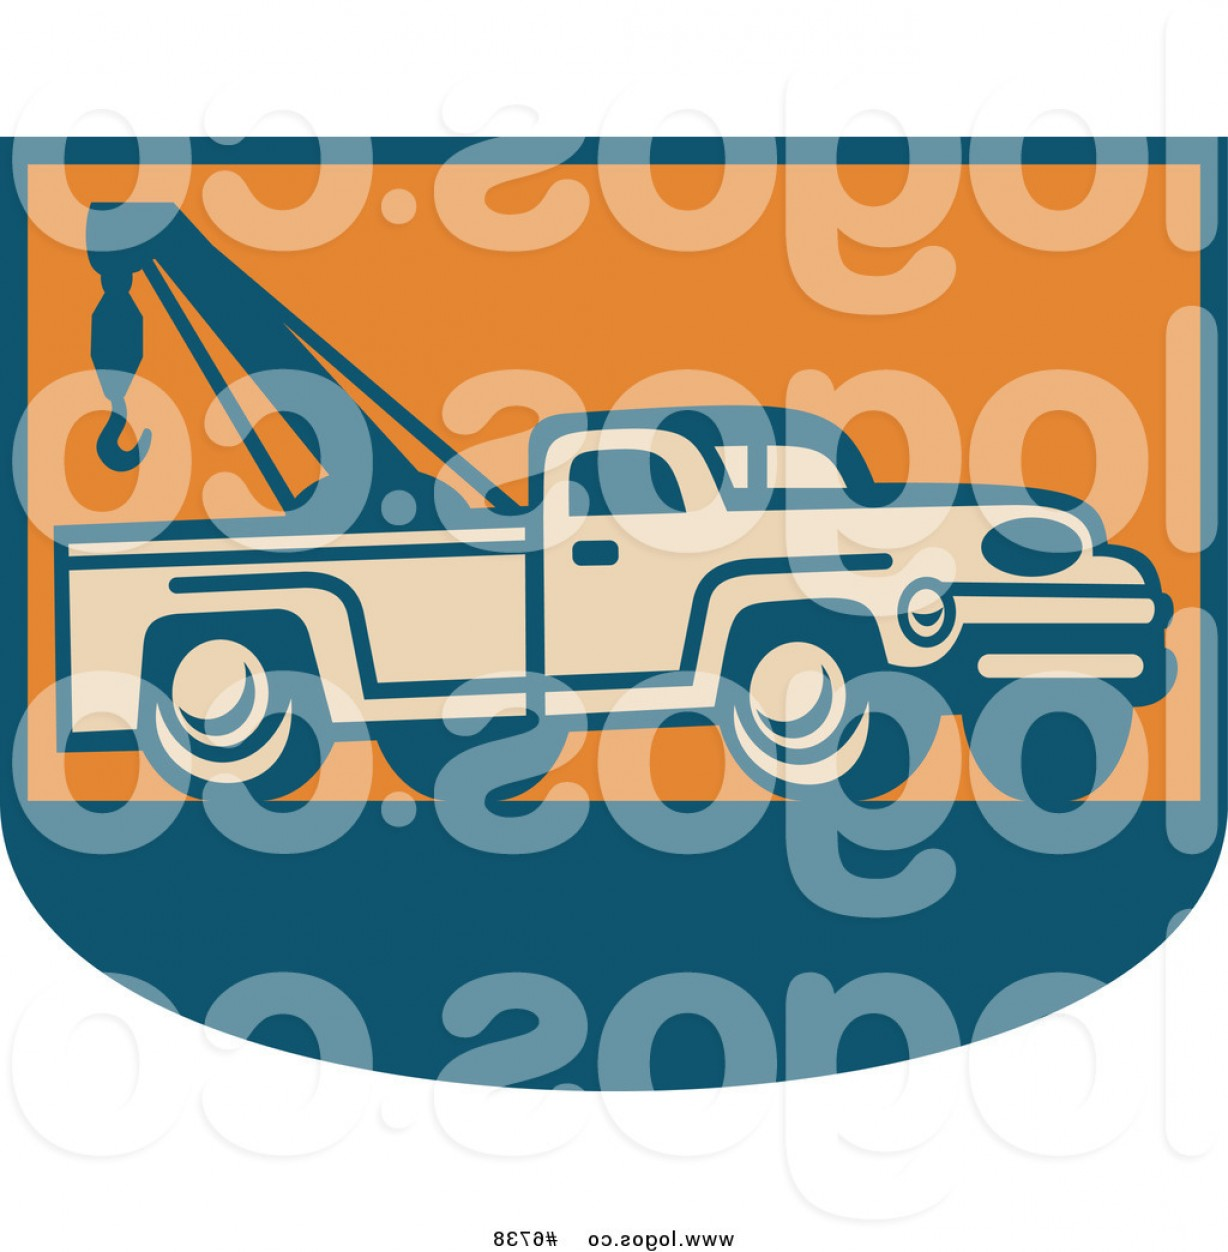 Towing Vector Clip Art: Royalty Free Clip Art Vector Logo Of A Tow Truck On Orange And Blue By Patrimonio